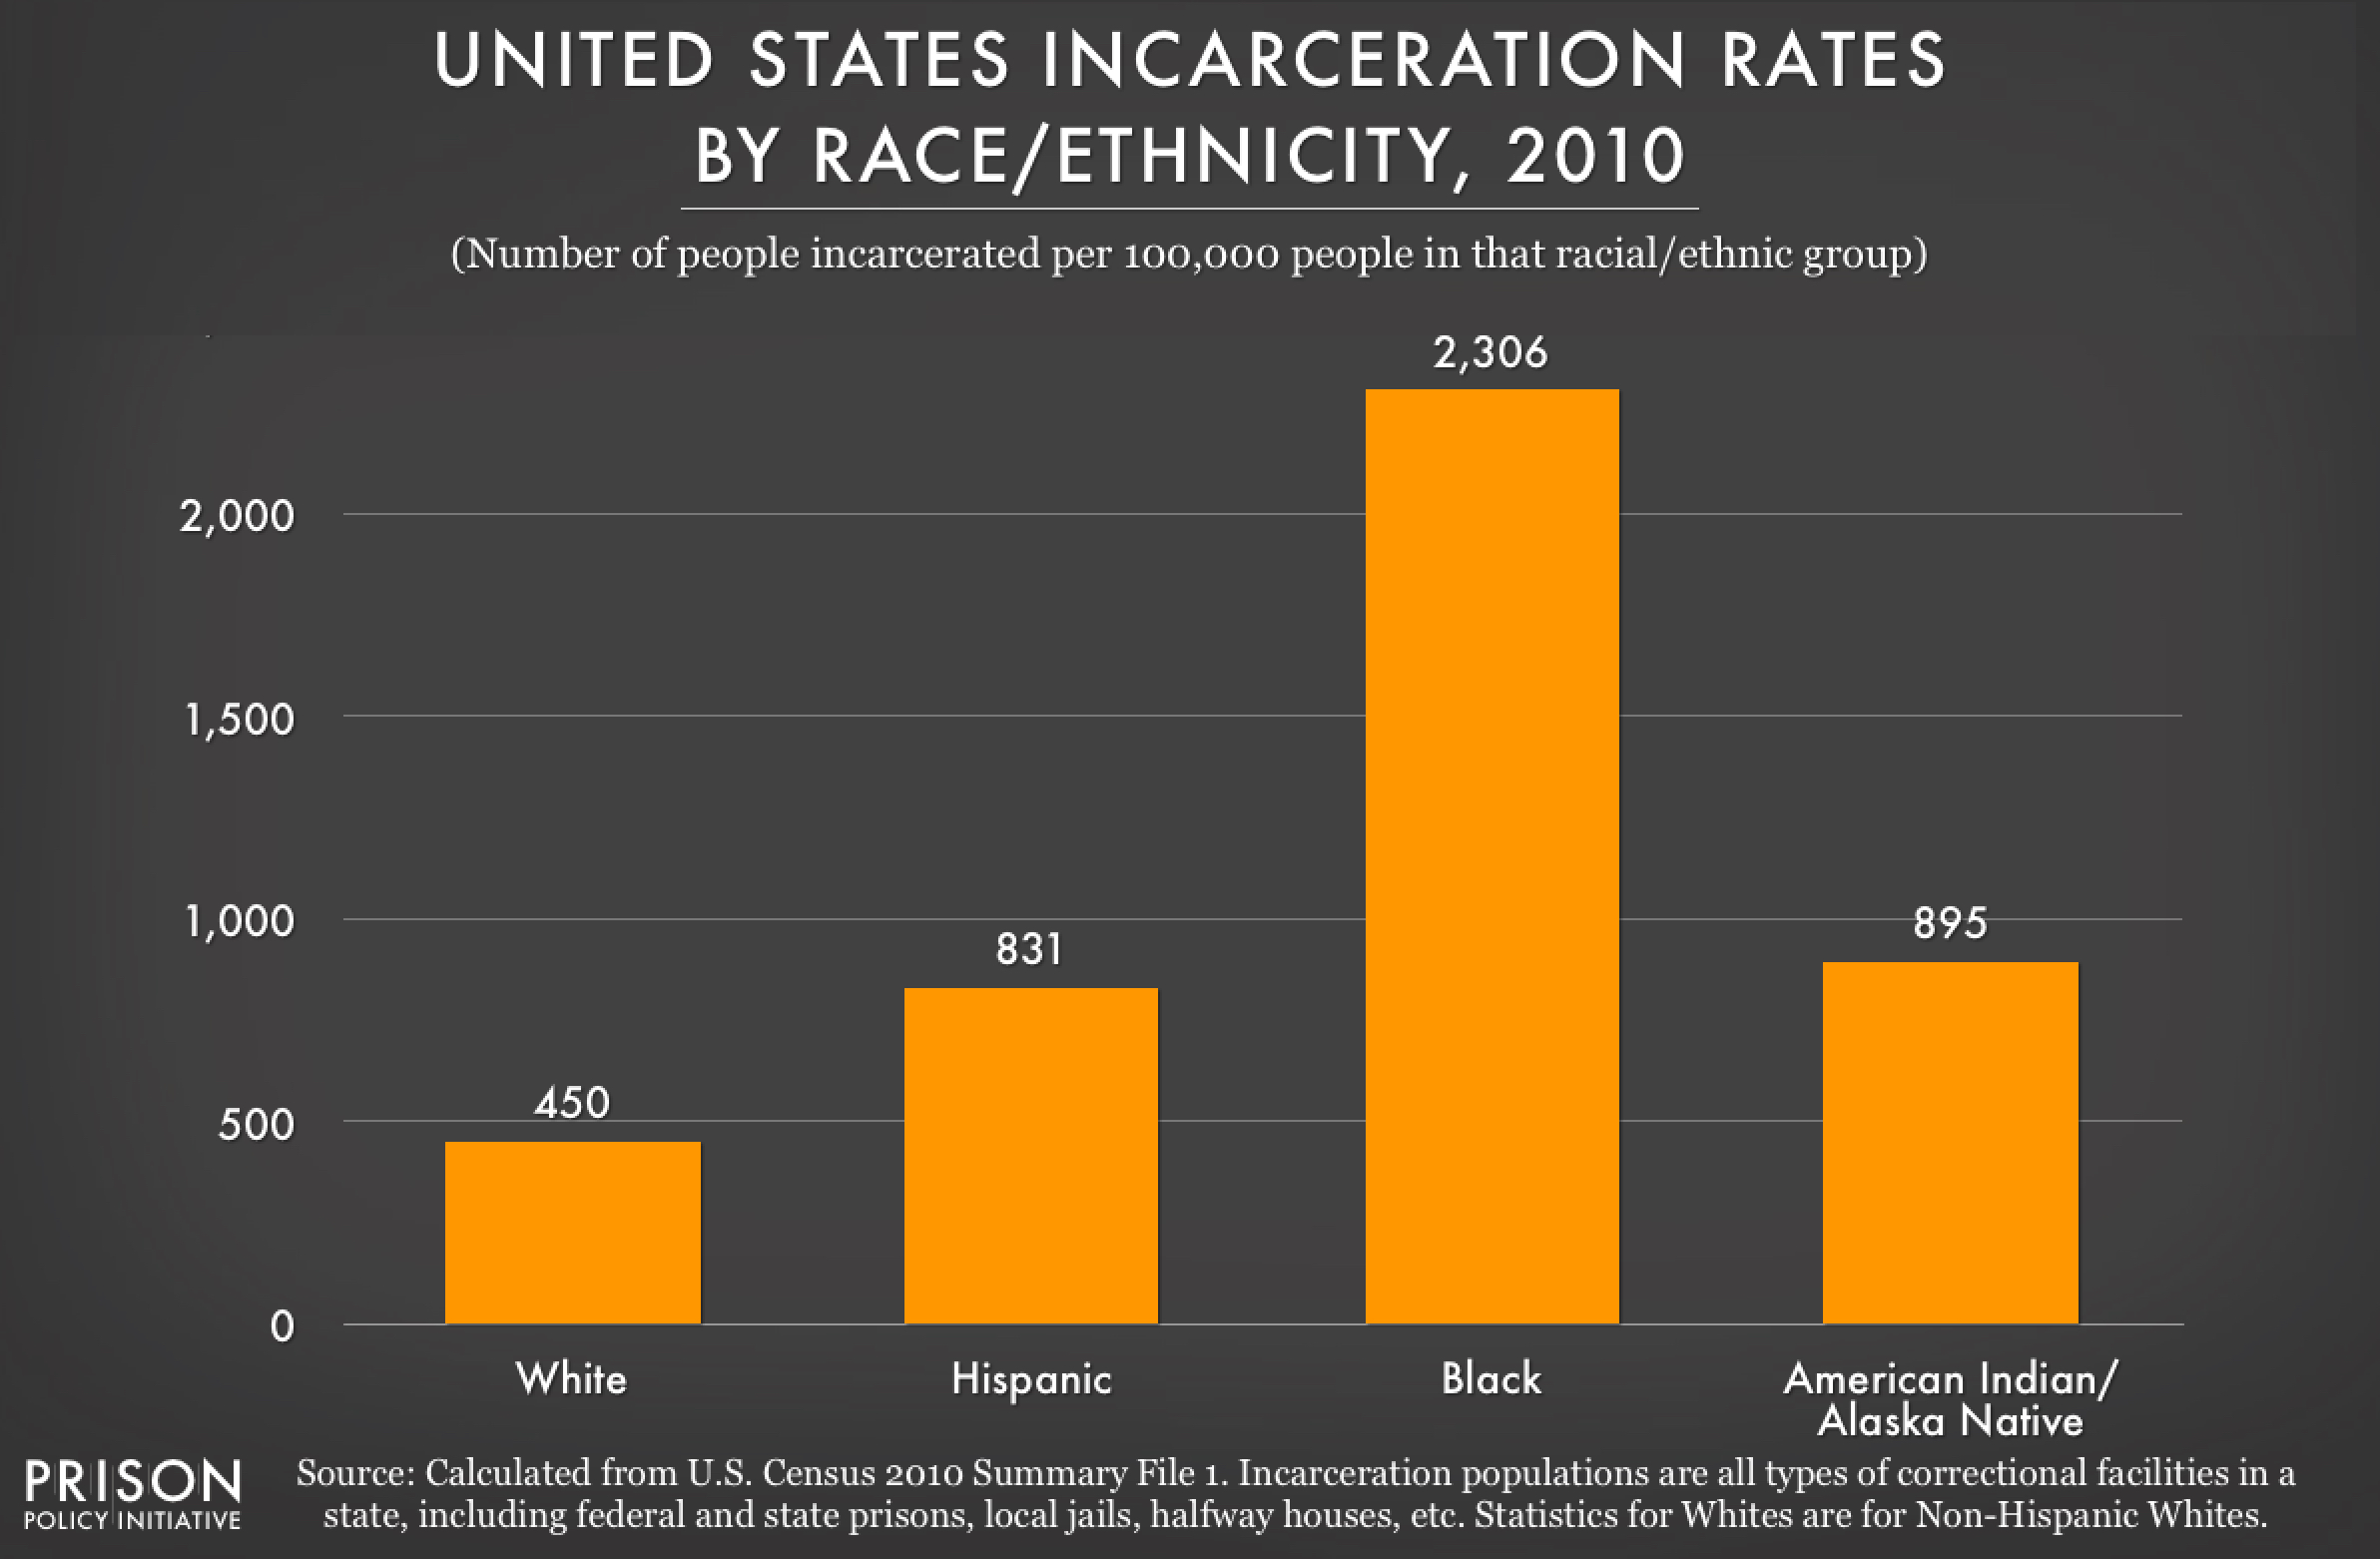 graph showing incarceration rates in United States broken down by race